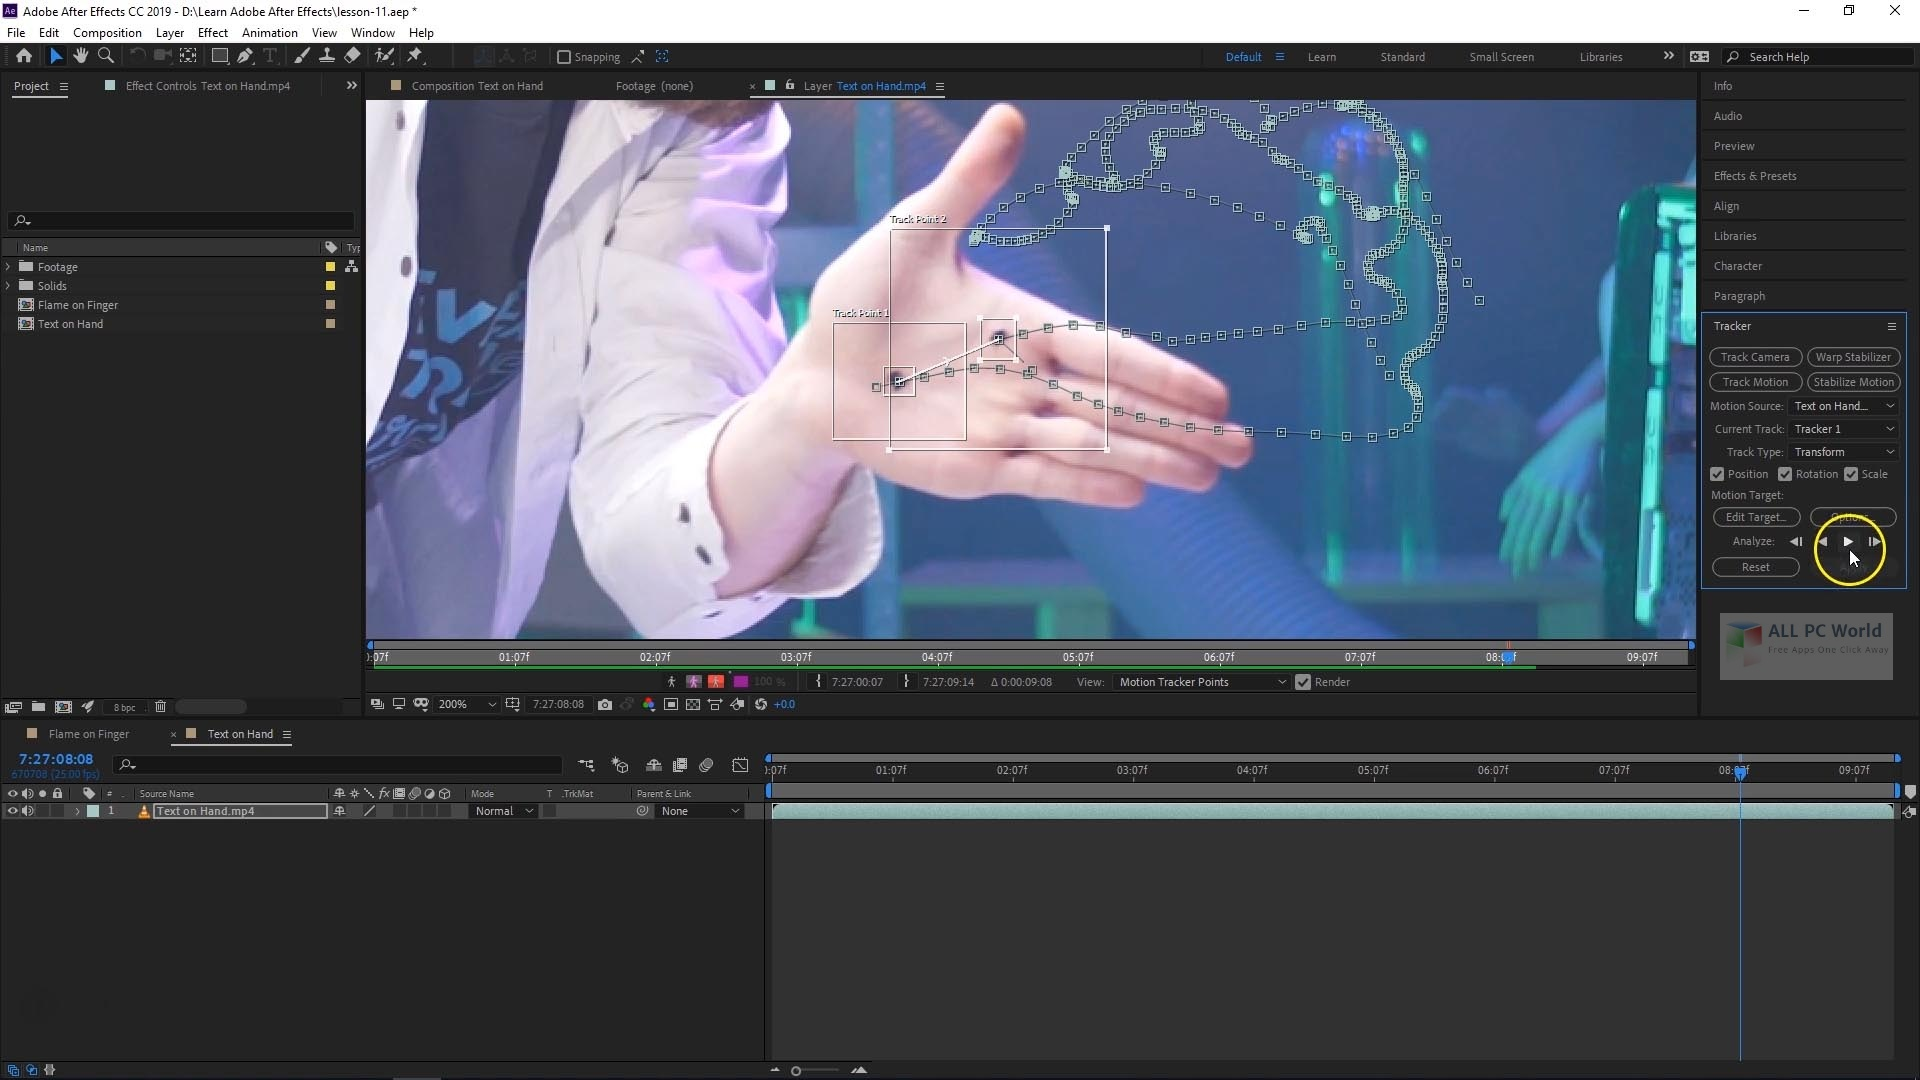 Adobe After Effects CC 2020 v17.0.6.35 for Windows 10